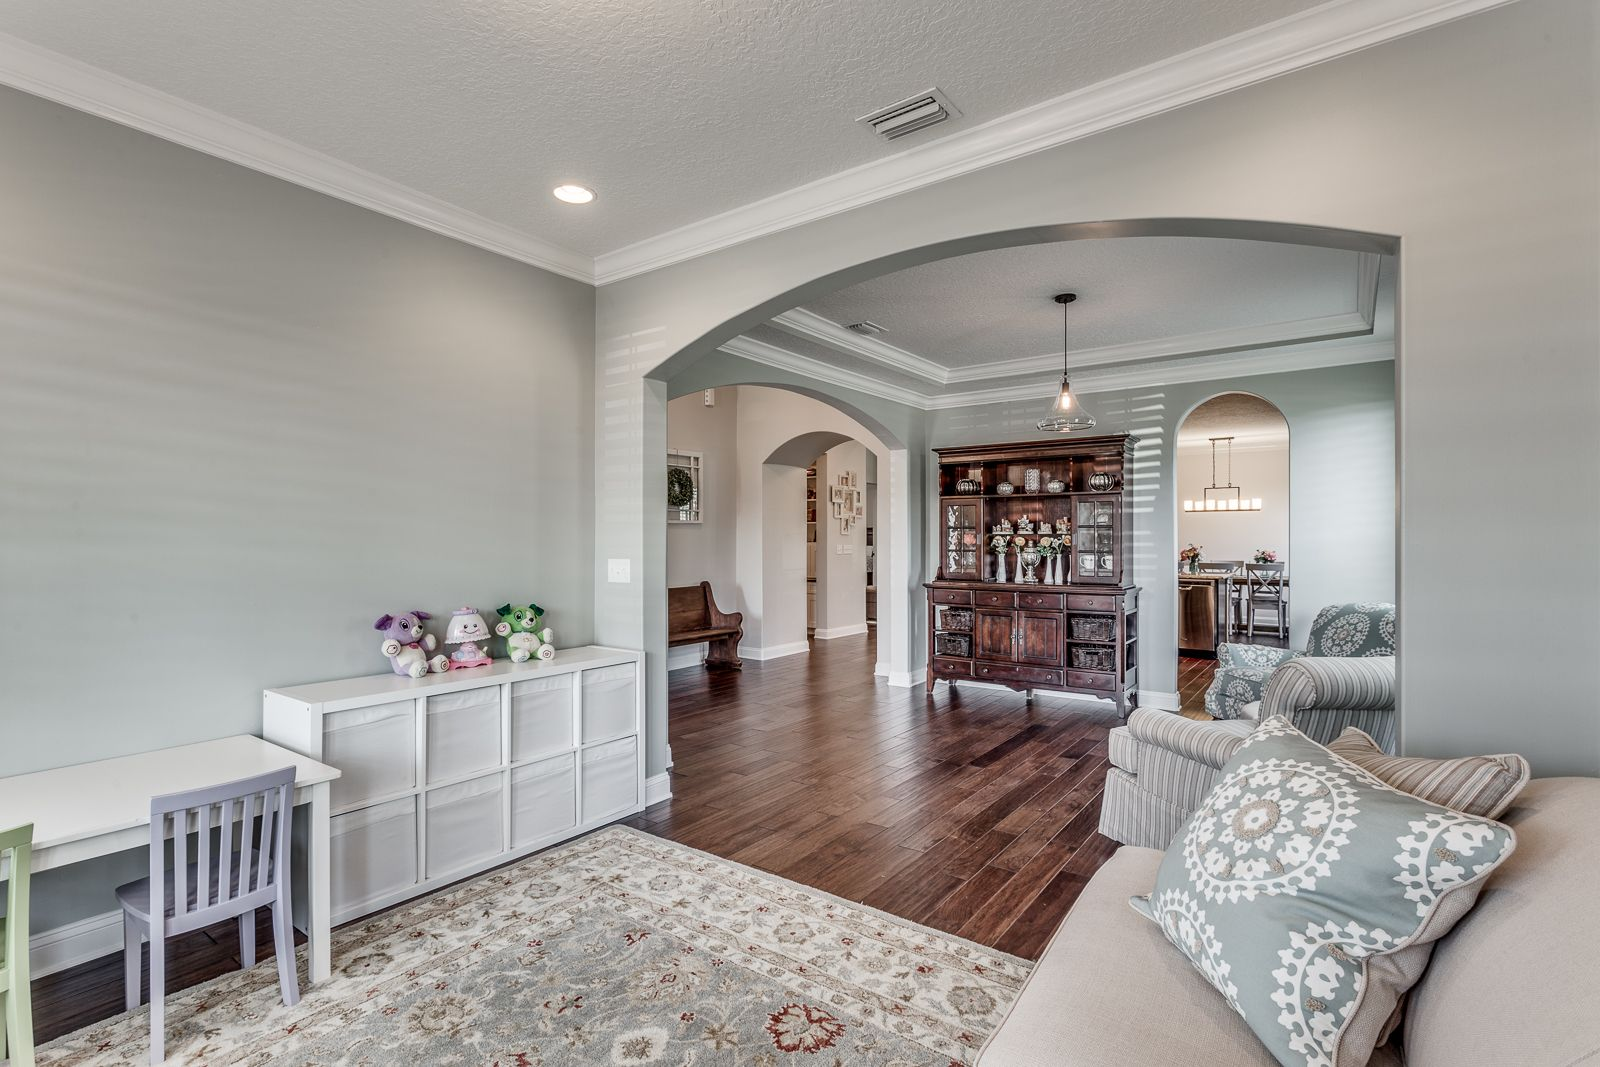 Front sitting room sherwin williams comfort gray paint - Sherwin williams comfort gray living room ...